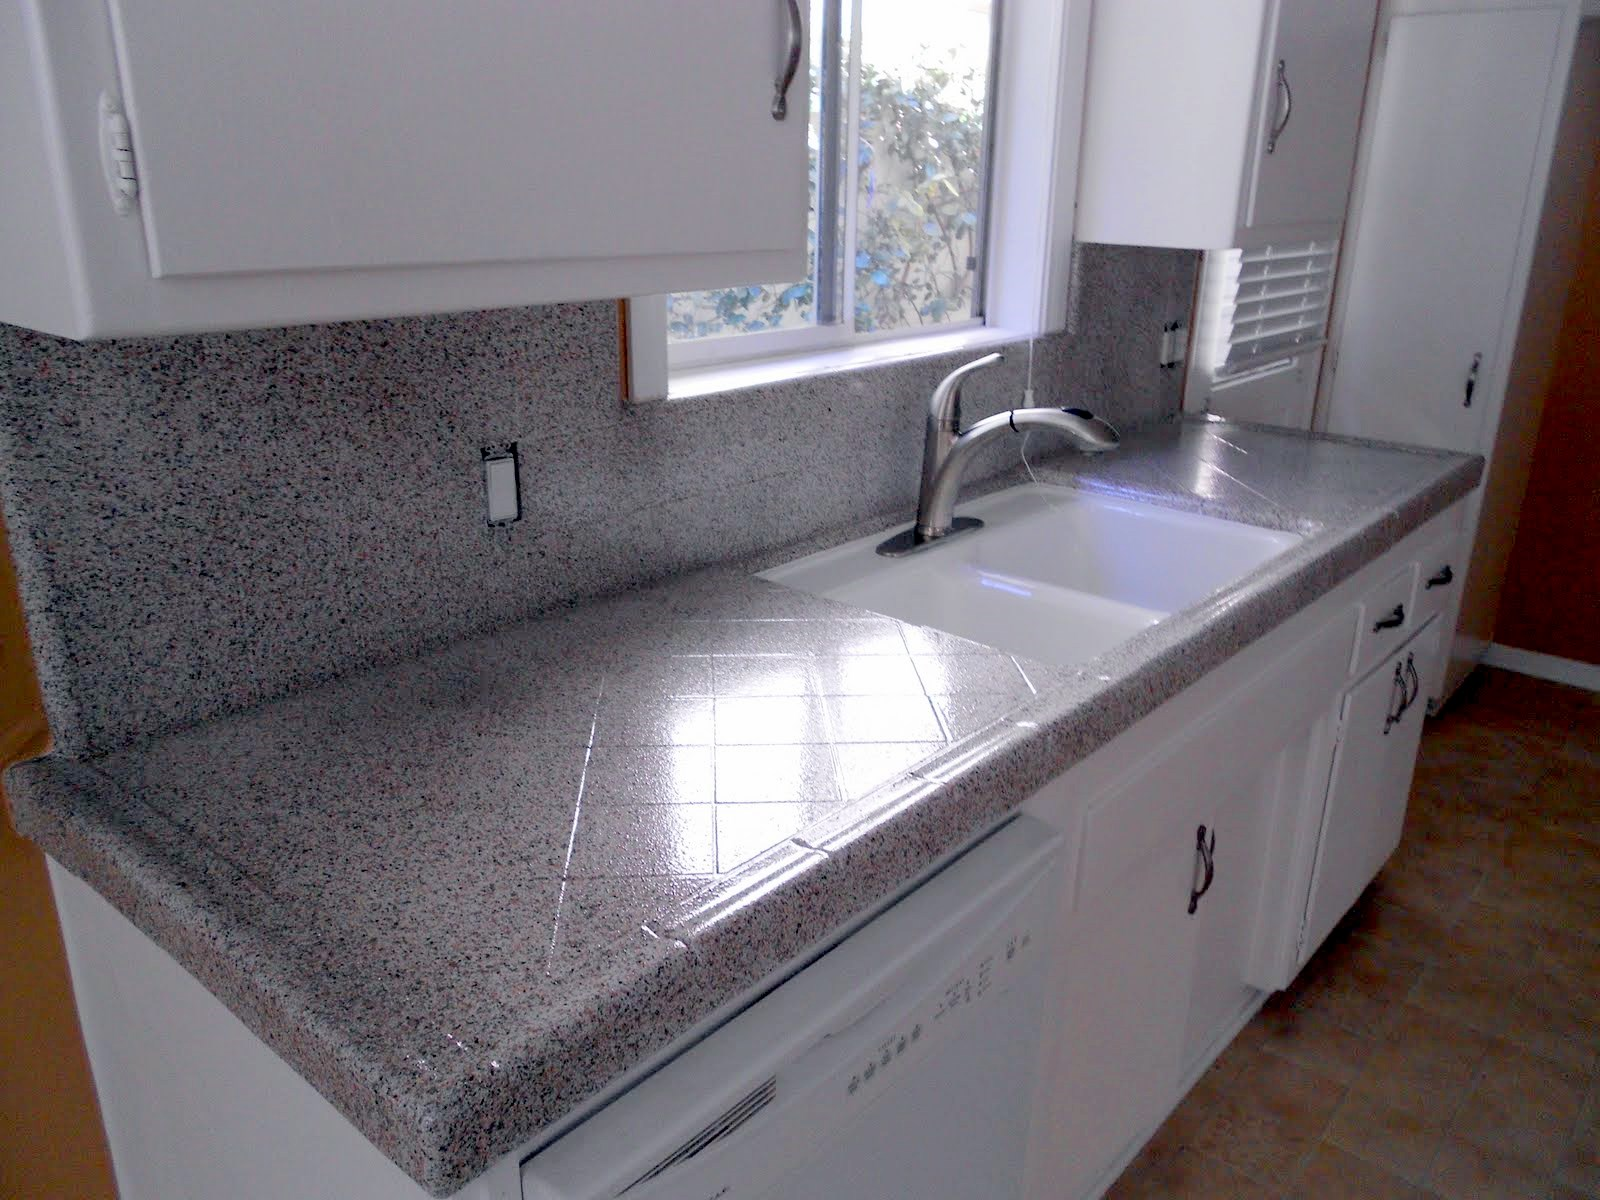 Kitchen Counter Tile Bathtub And Countertop Refinishing